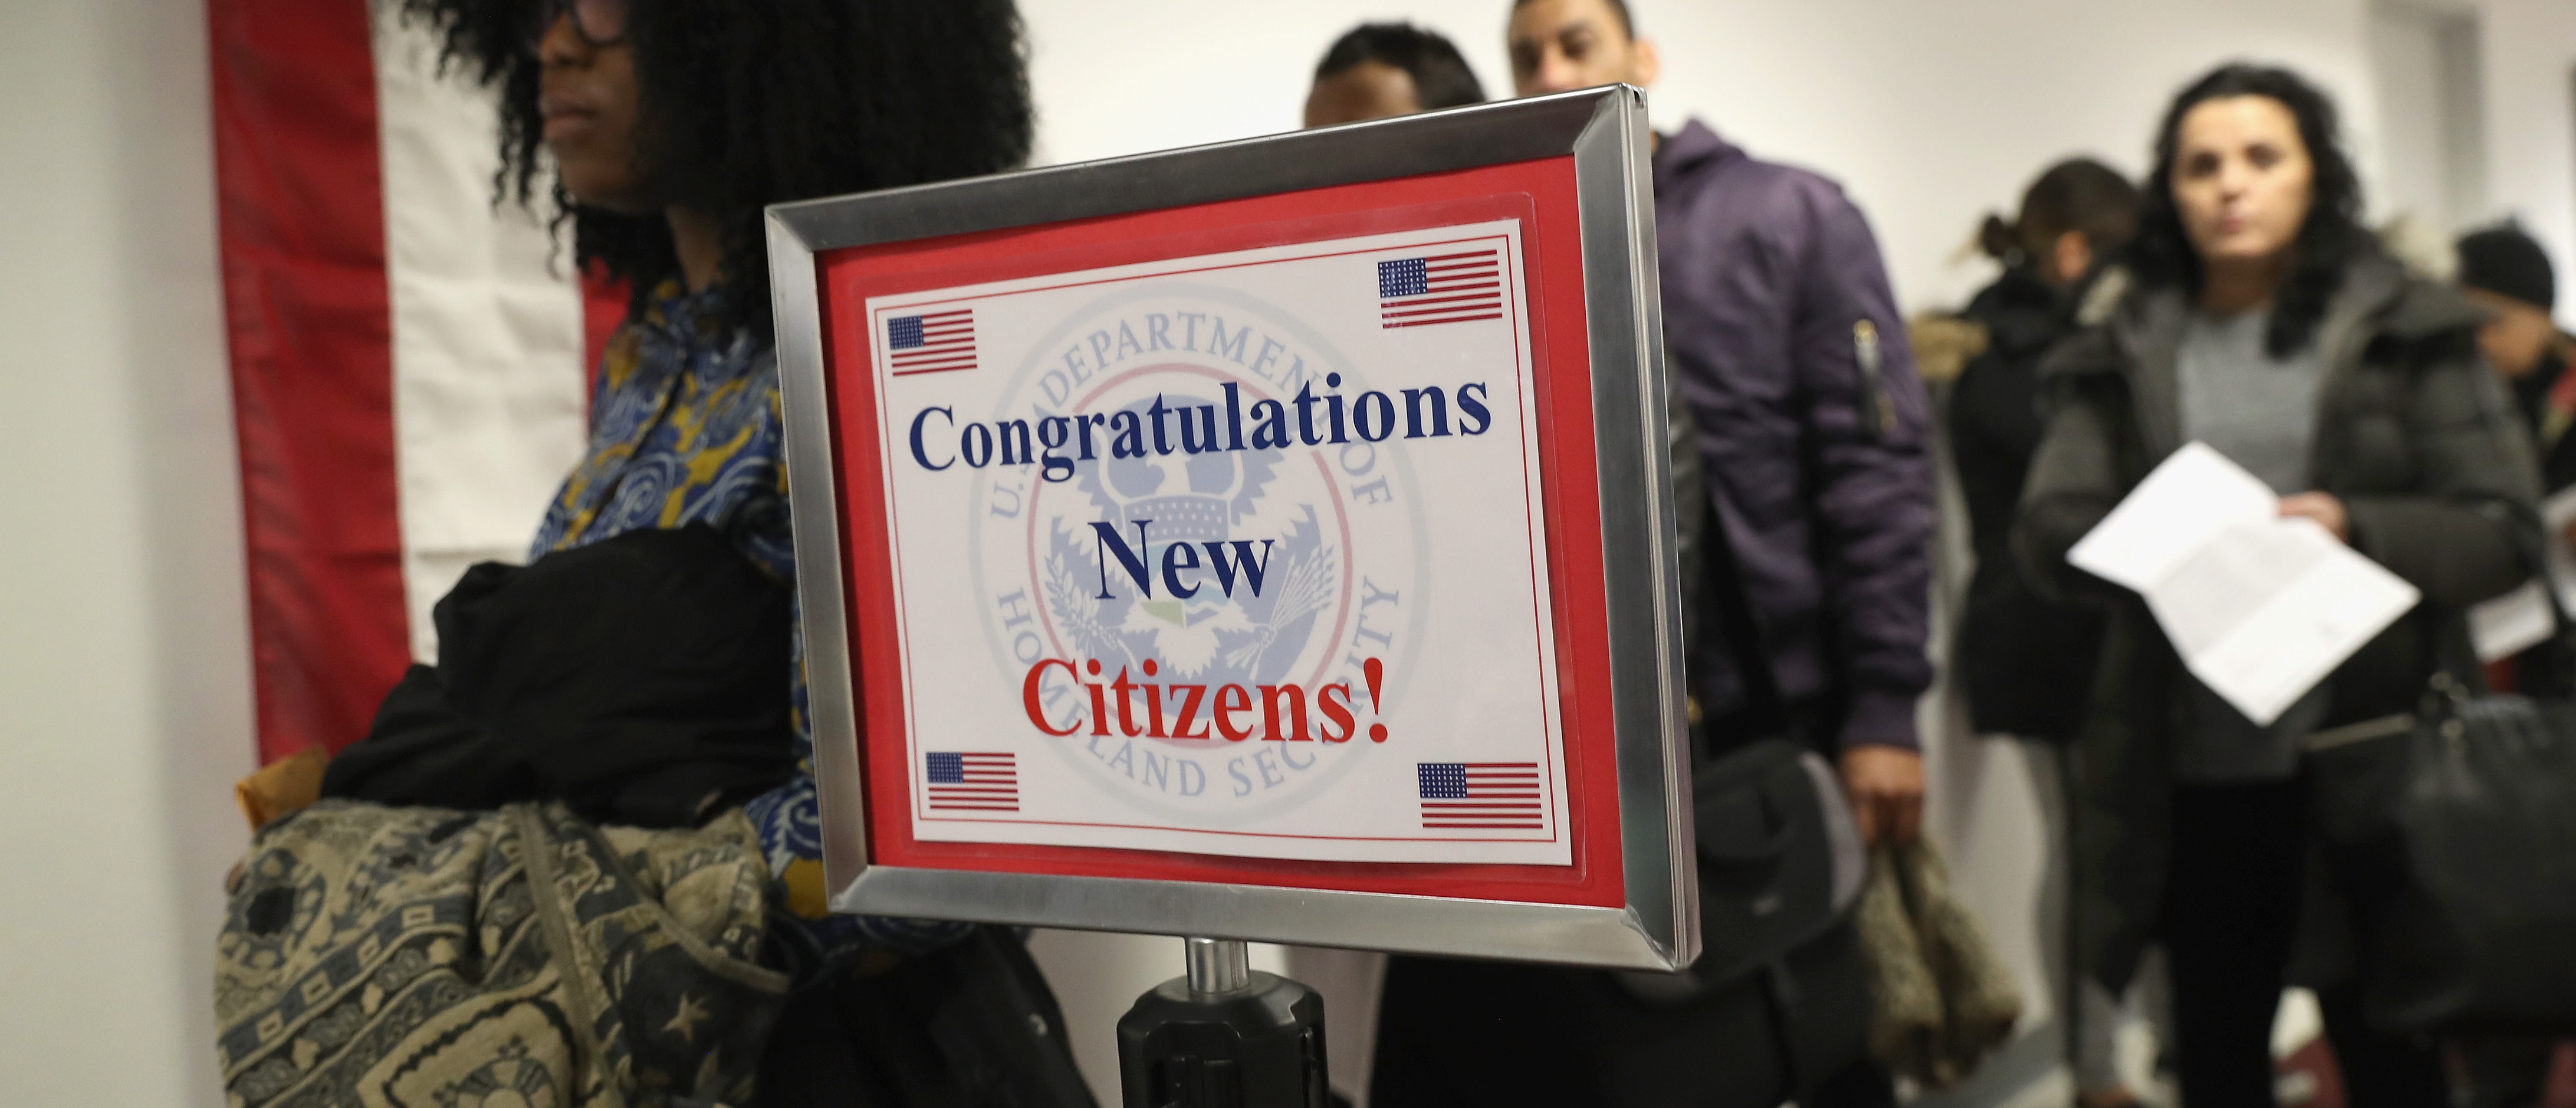 Immigrants wait in line to become U.S. citizens at a naturalization ceremony on Feb. 2, 2018 in New York City. U.S. Citizenship and Immigration Services (USCIS) swore in 128 immigrants from 42 different countries during the ceremony at the downtown Manhattan Federal Building. (Photo by John Moore/Getty Images)